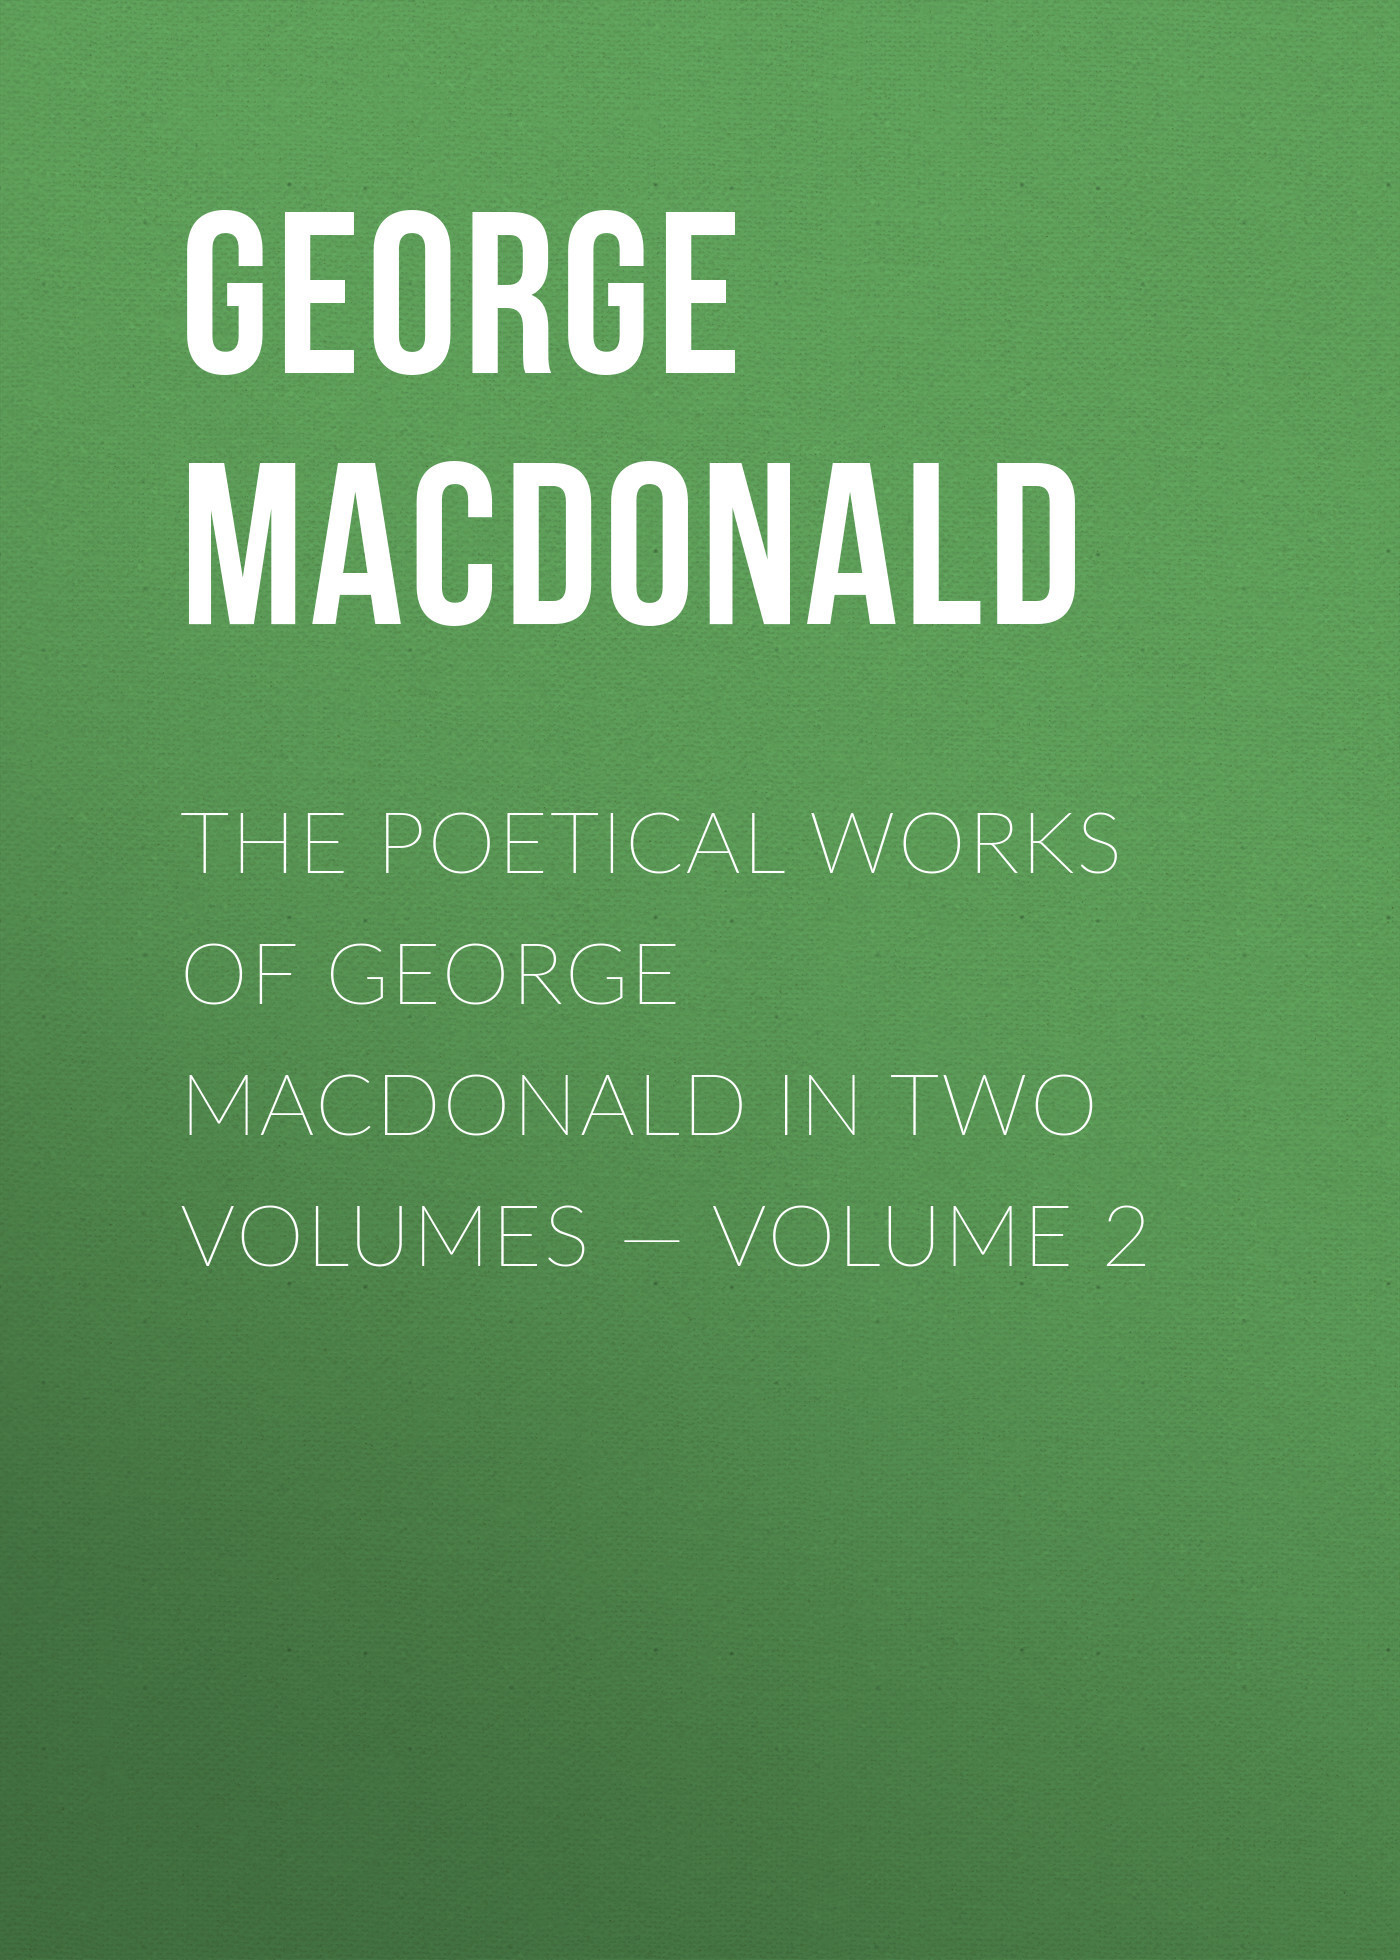 George MacDonald The poetical works of George MacDonald in two volumes — Volume 2 george thorogood george thorogood party of one